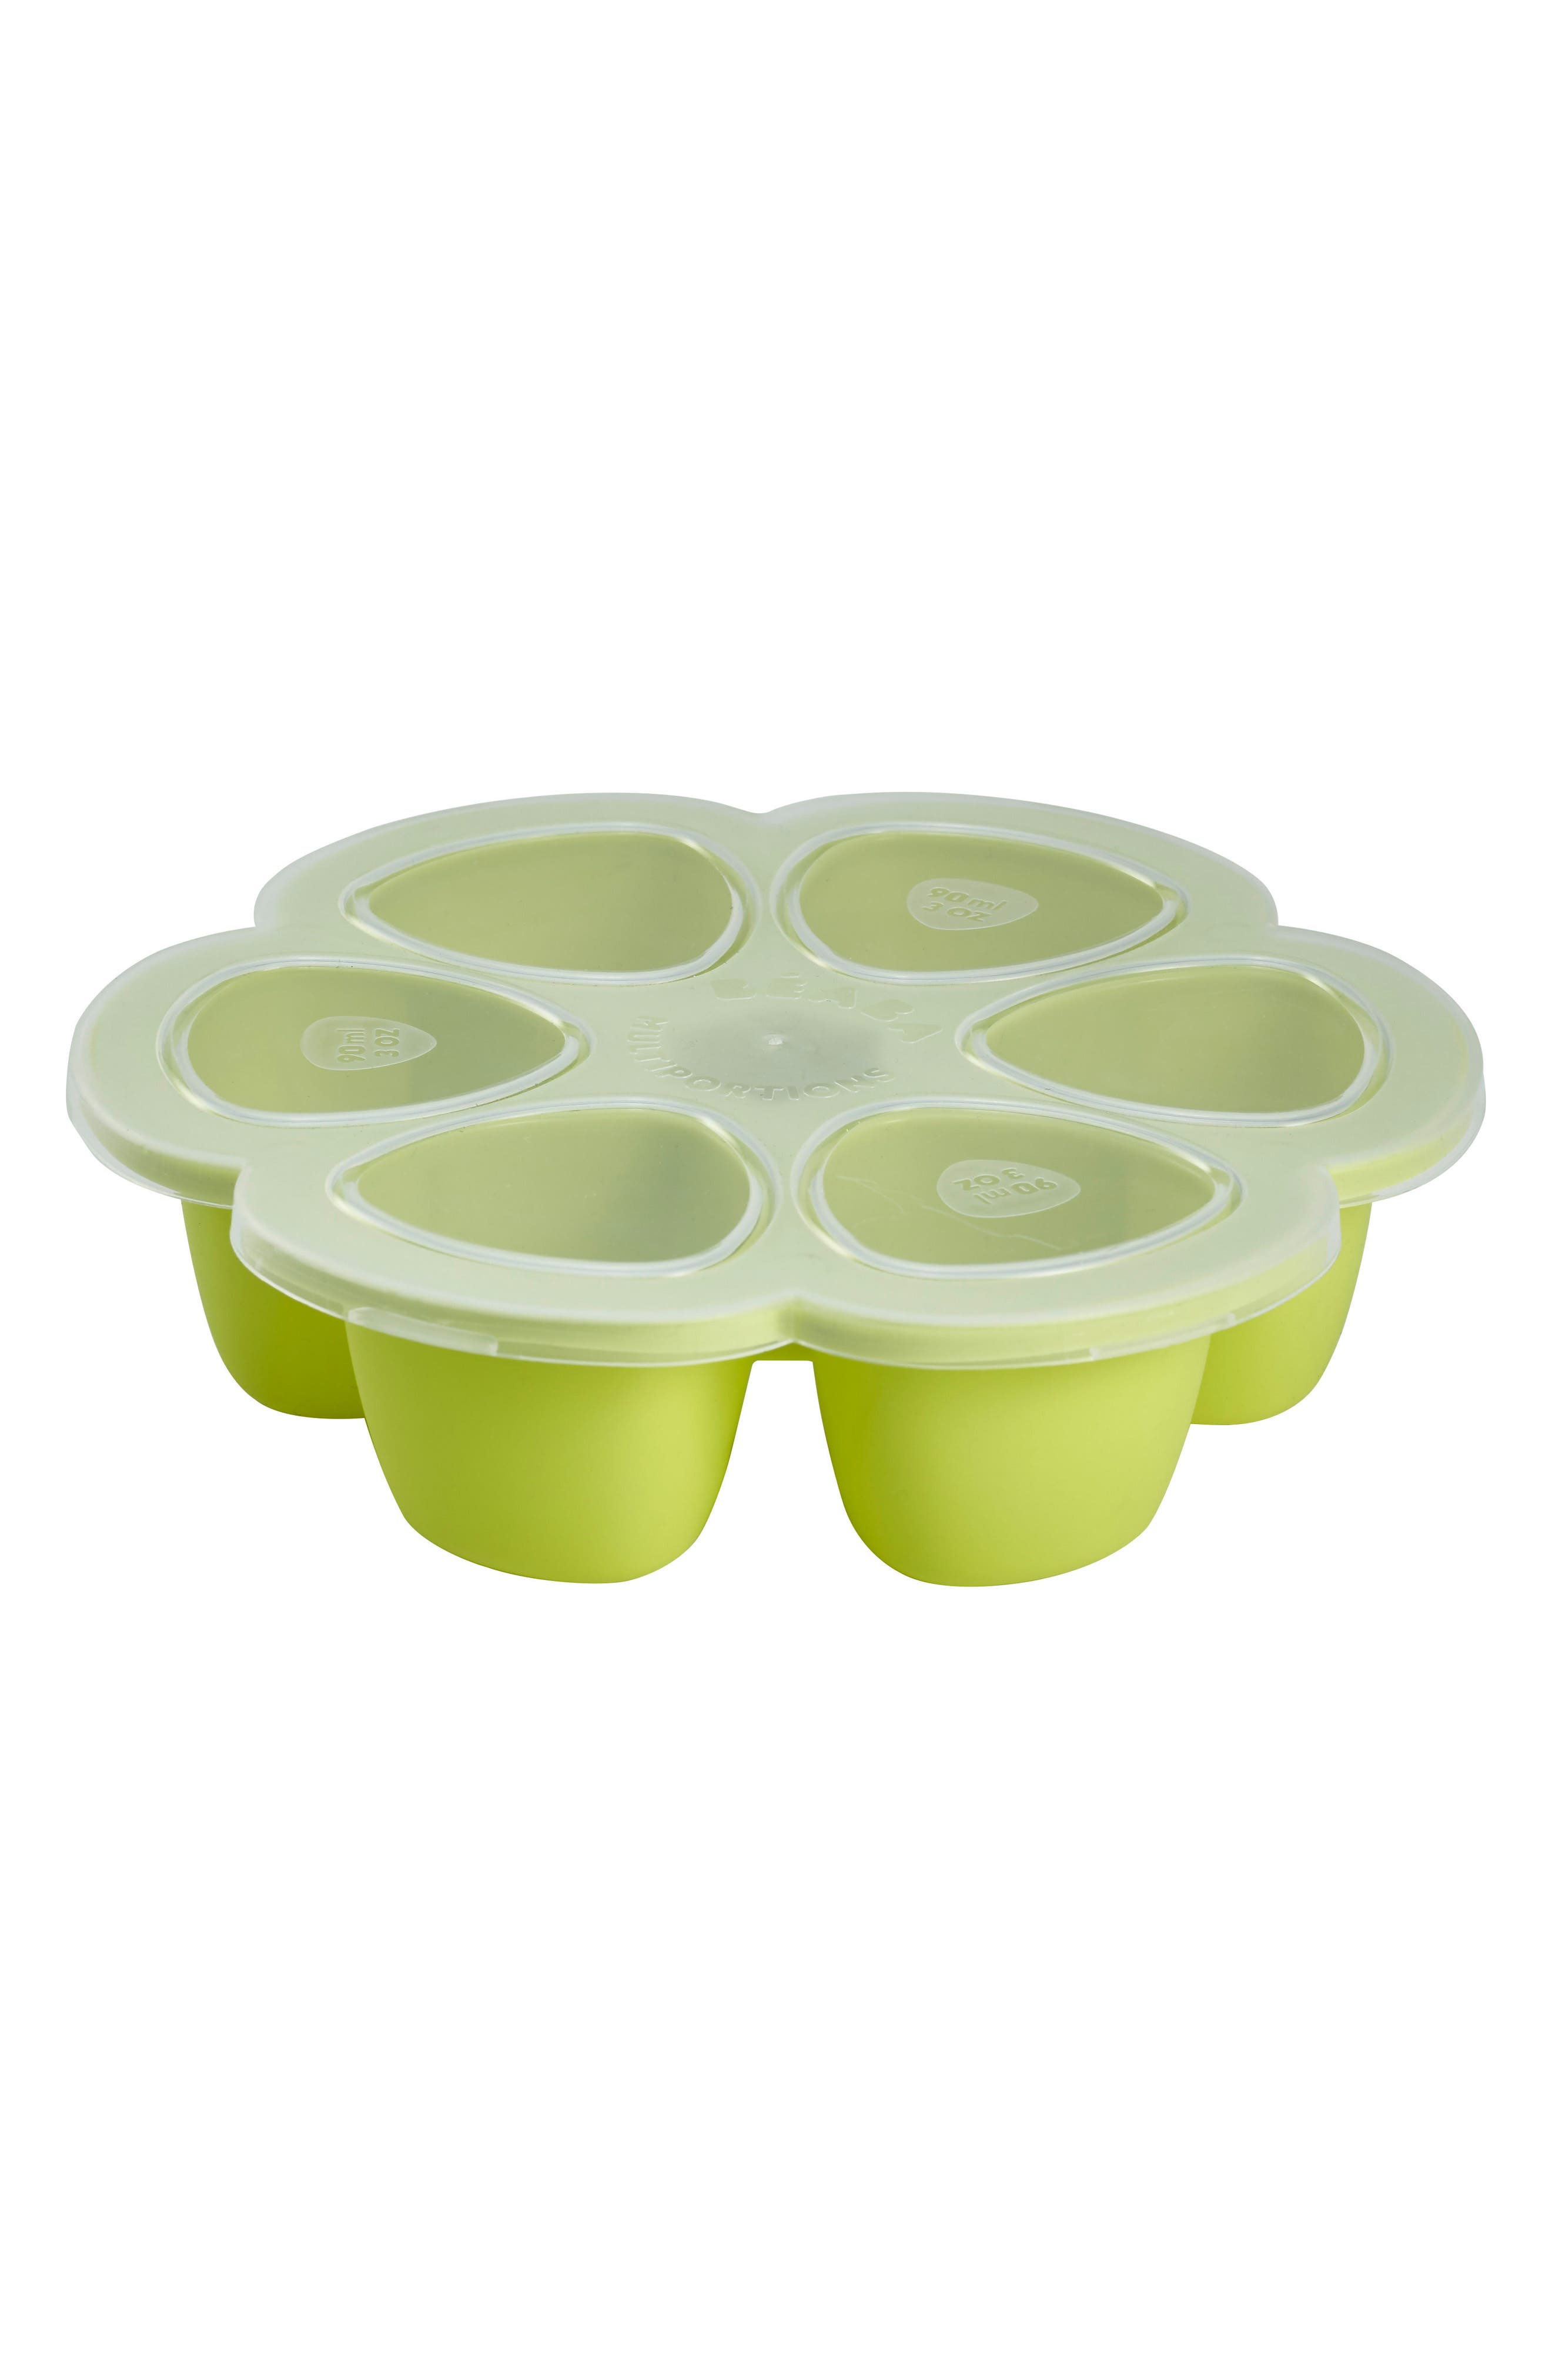 'Multiportions<sup>™</sup>' Silicone 5 oz. Food Cup Tray,                             Main thumbnail 1, color,                             Neon